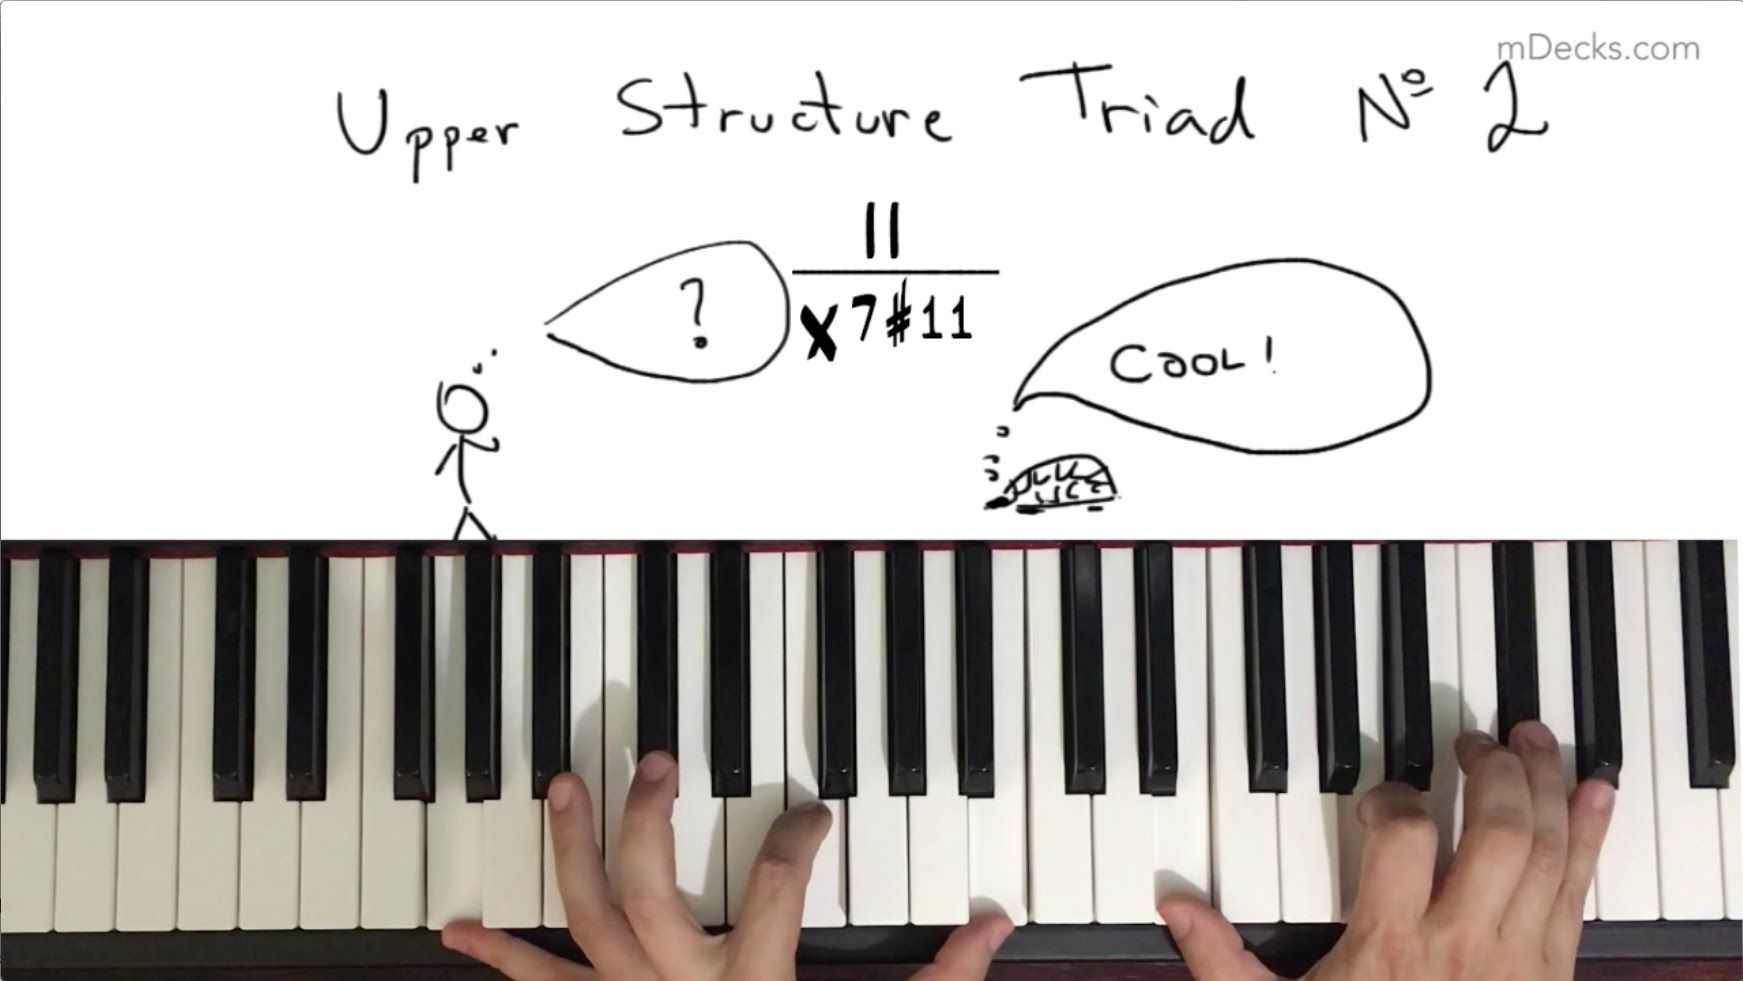 Upper Structure Triad No. 2 (the II major triad over X7#11)